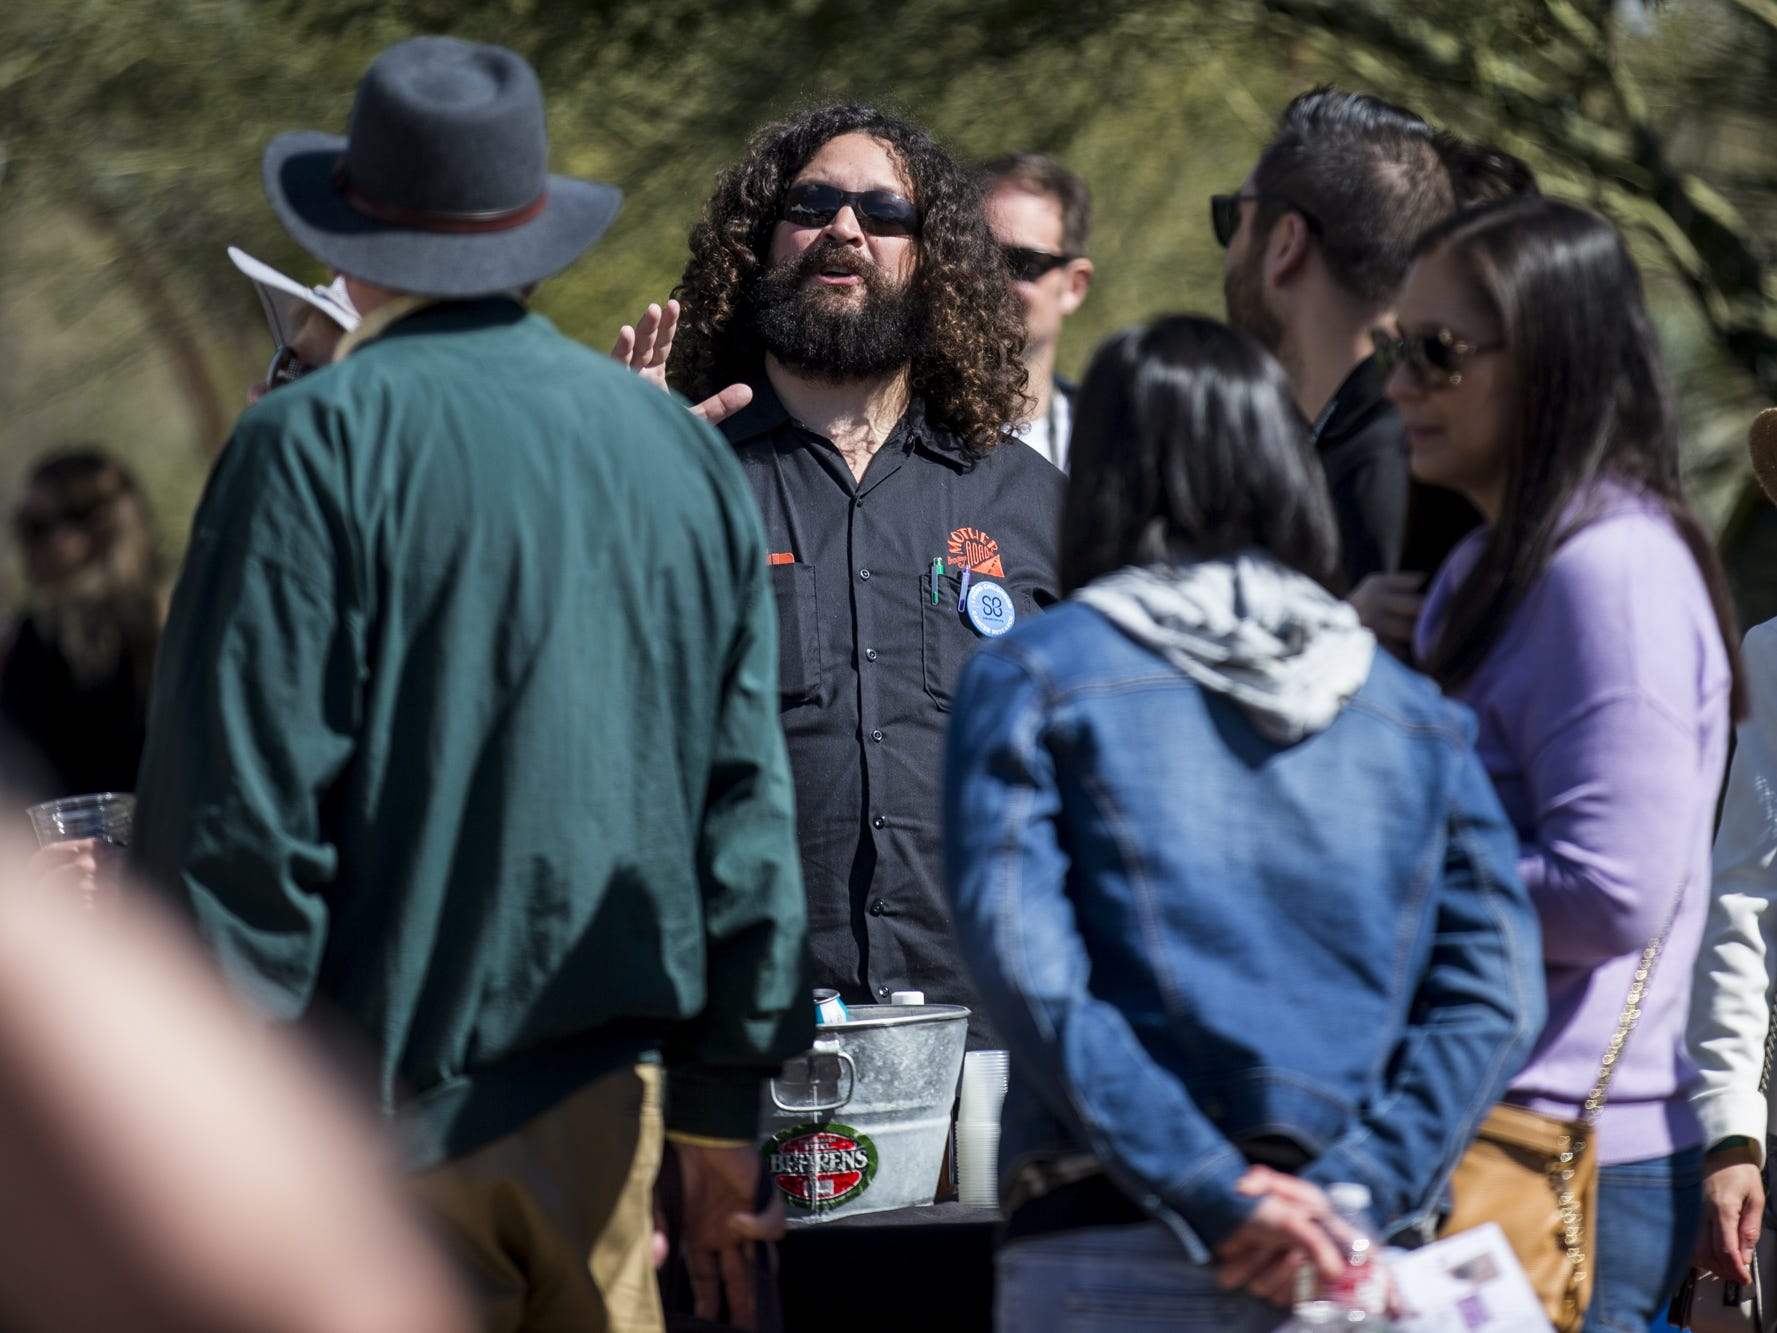 Evan Luthye of Mother Road Brewing talks to people during Day 1 of the Devour Culinary Classic on Saturday, Feb. 23, 2019, at Desert Botanical Garden in Phoenix.